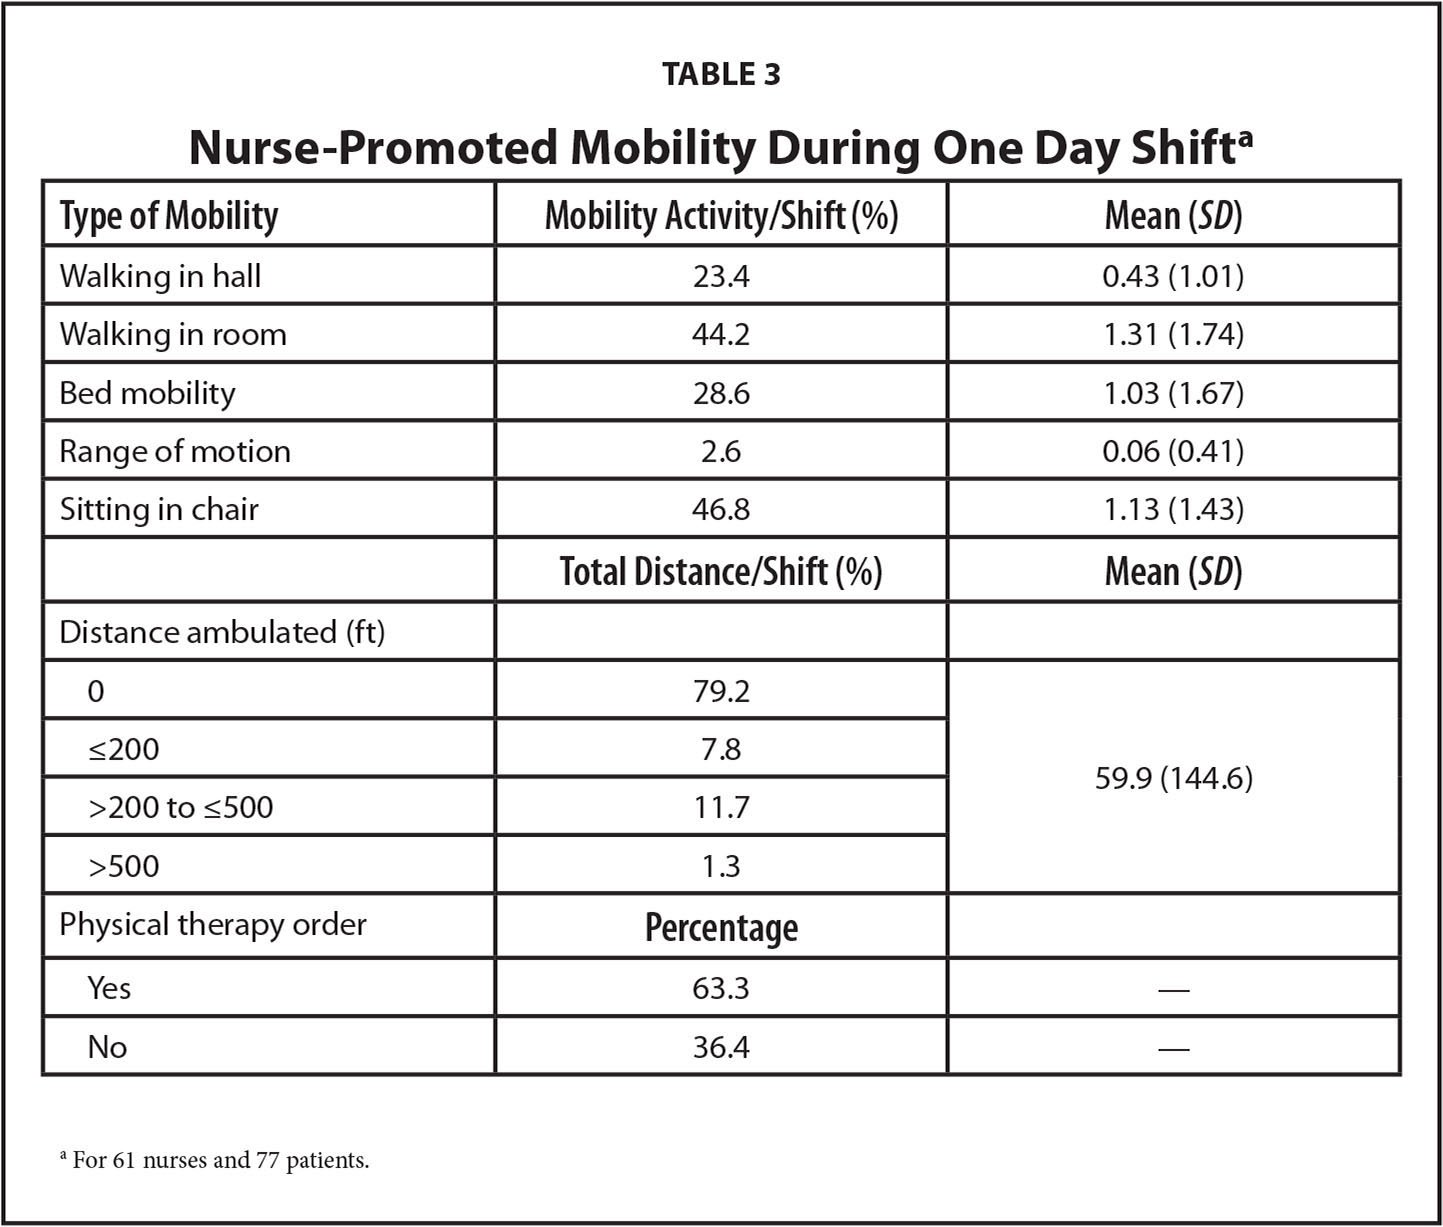 Nurse-Promoted Mobility During One Day Shifta